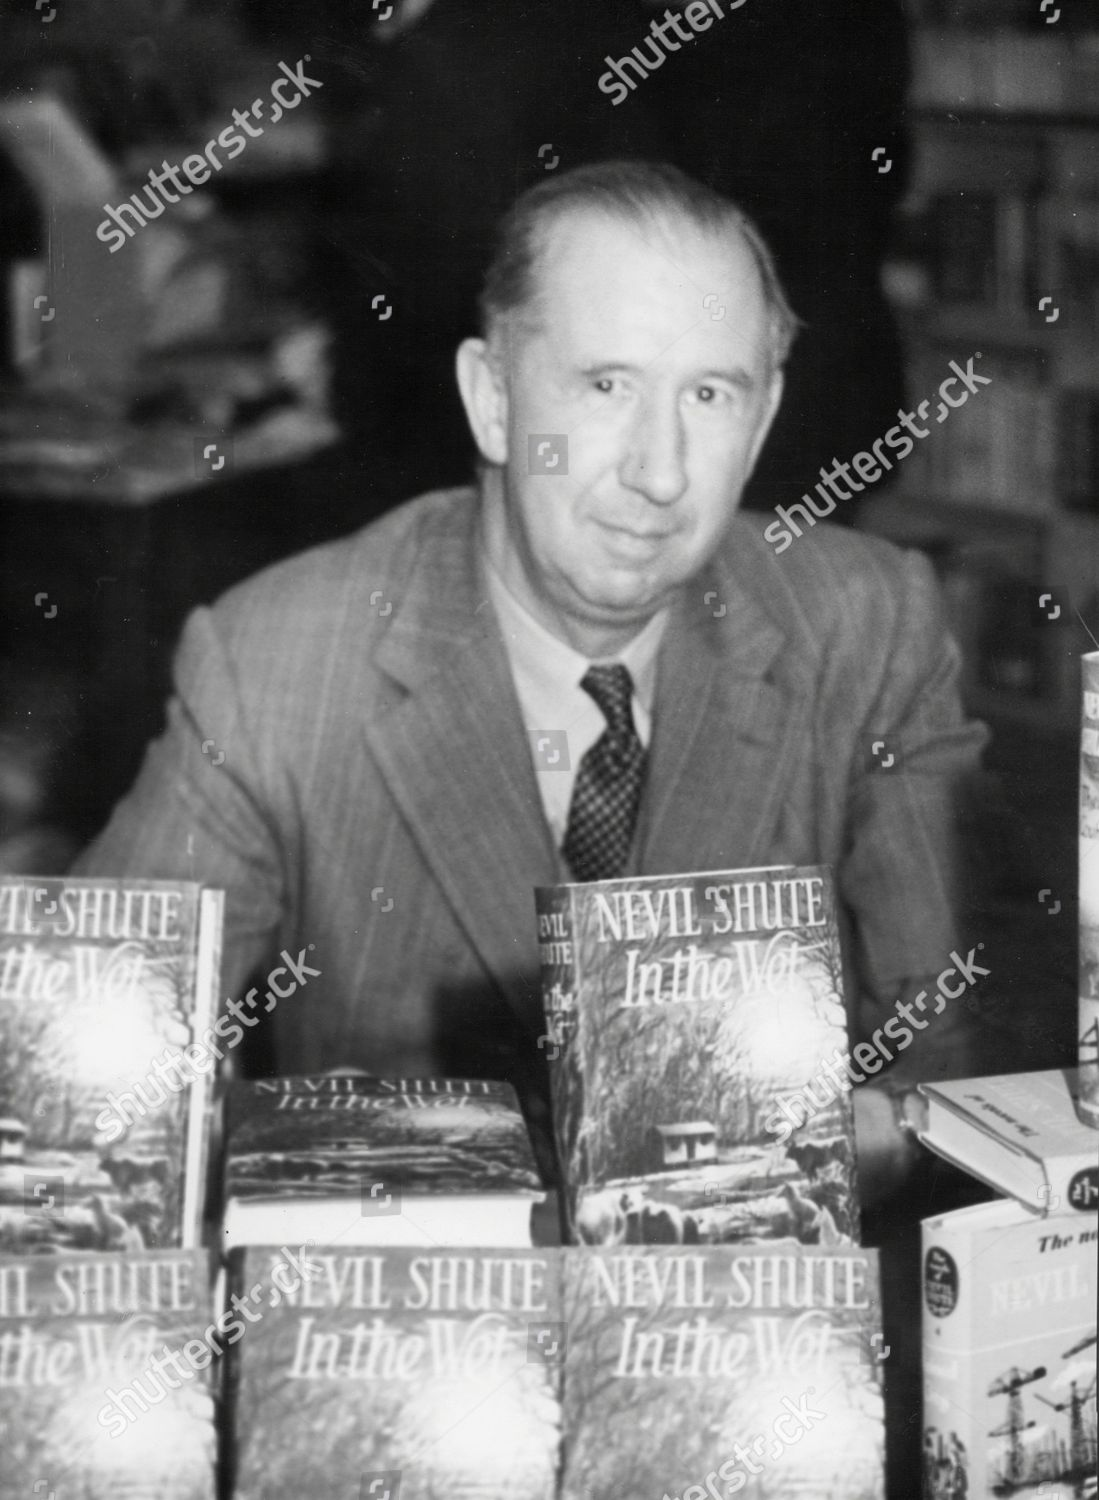 Author Nevil Shute Autographing His Novels Bourne Editorial Stock